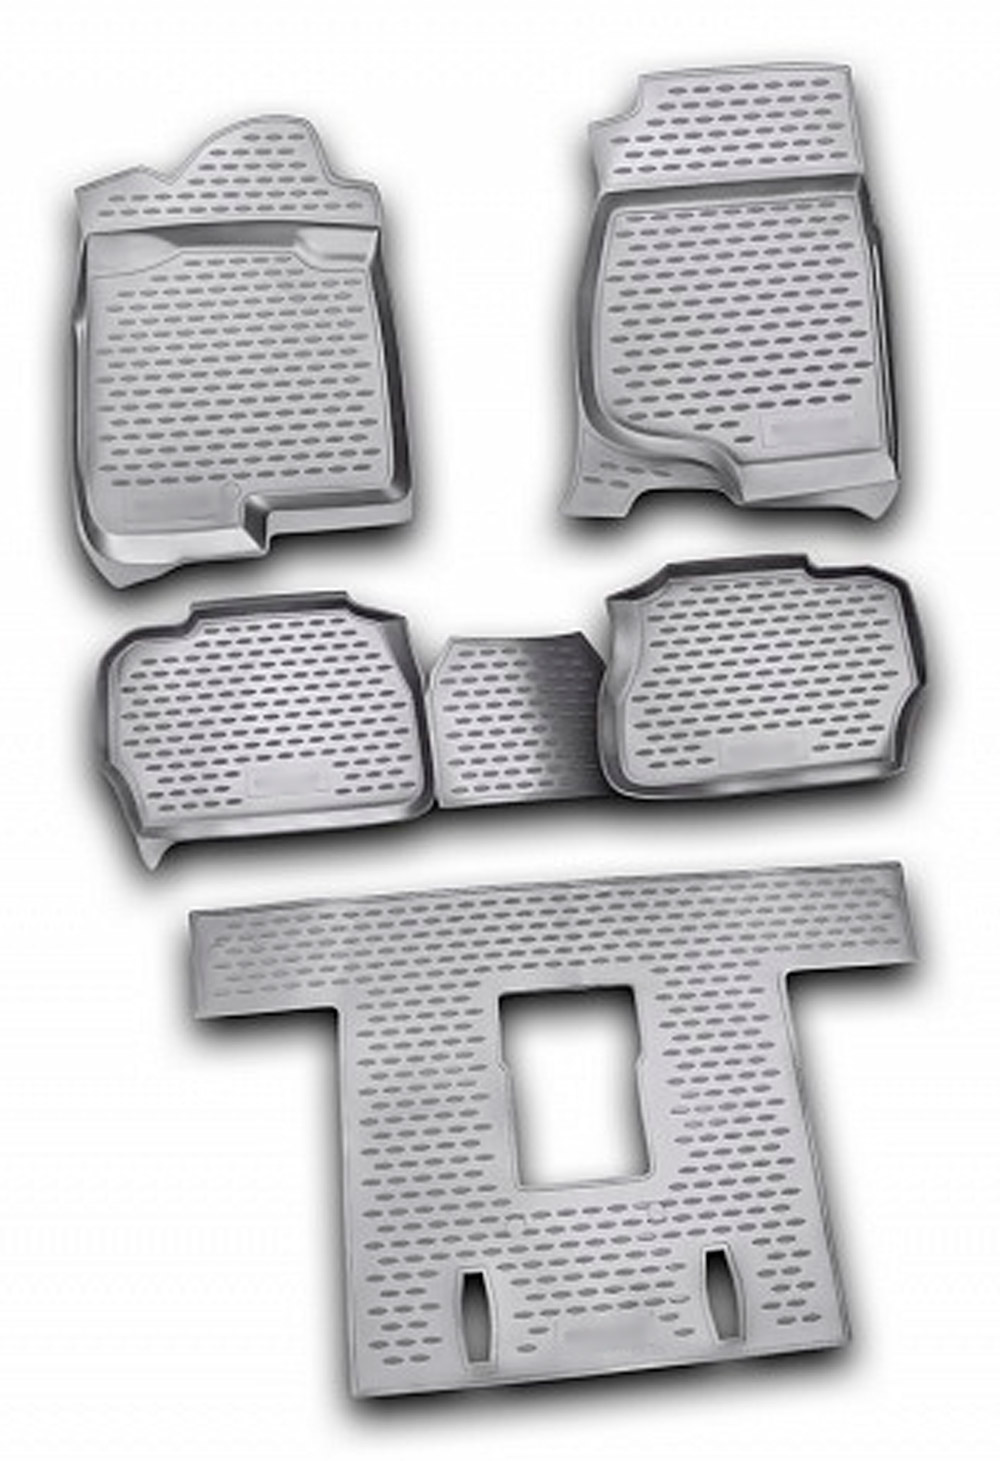 Floor mats for Cadillac Escalade 2015- 4 pcs rubber rugs non slip rubber interior car styling accessories